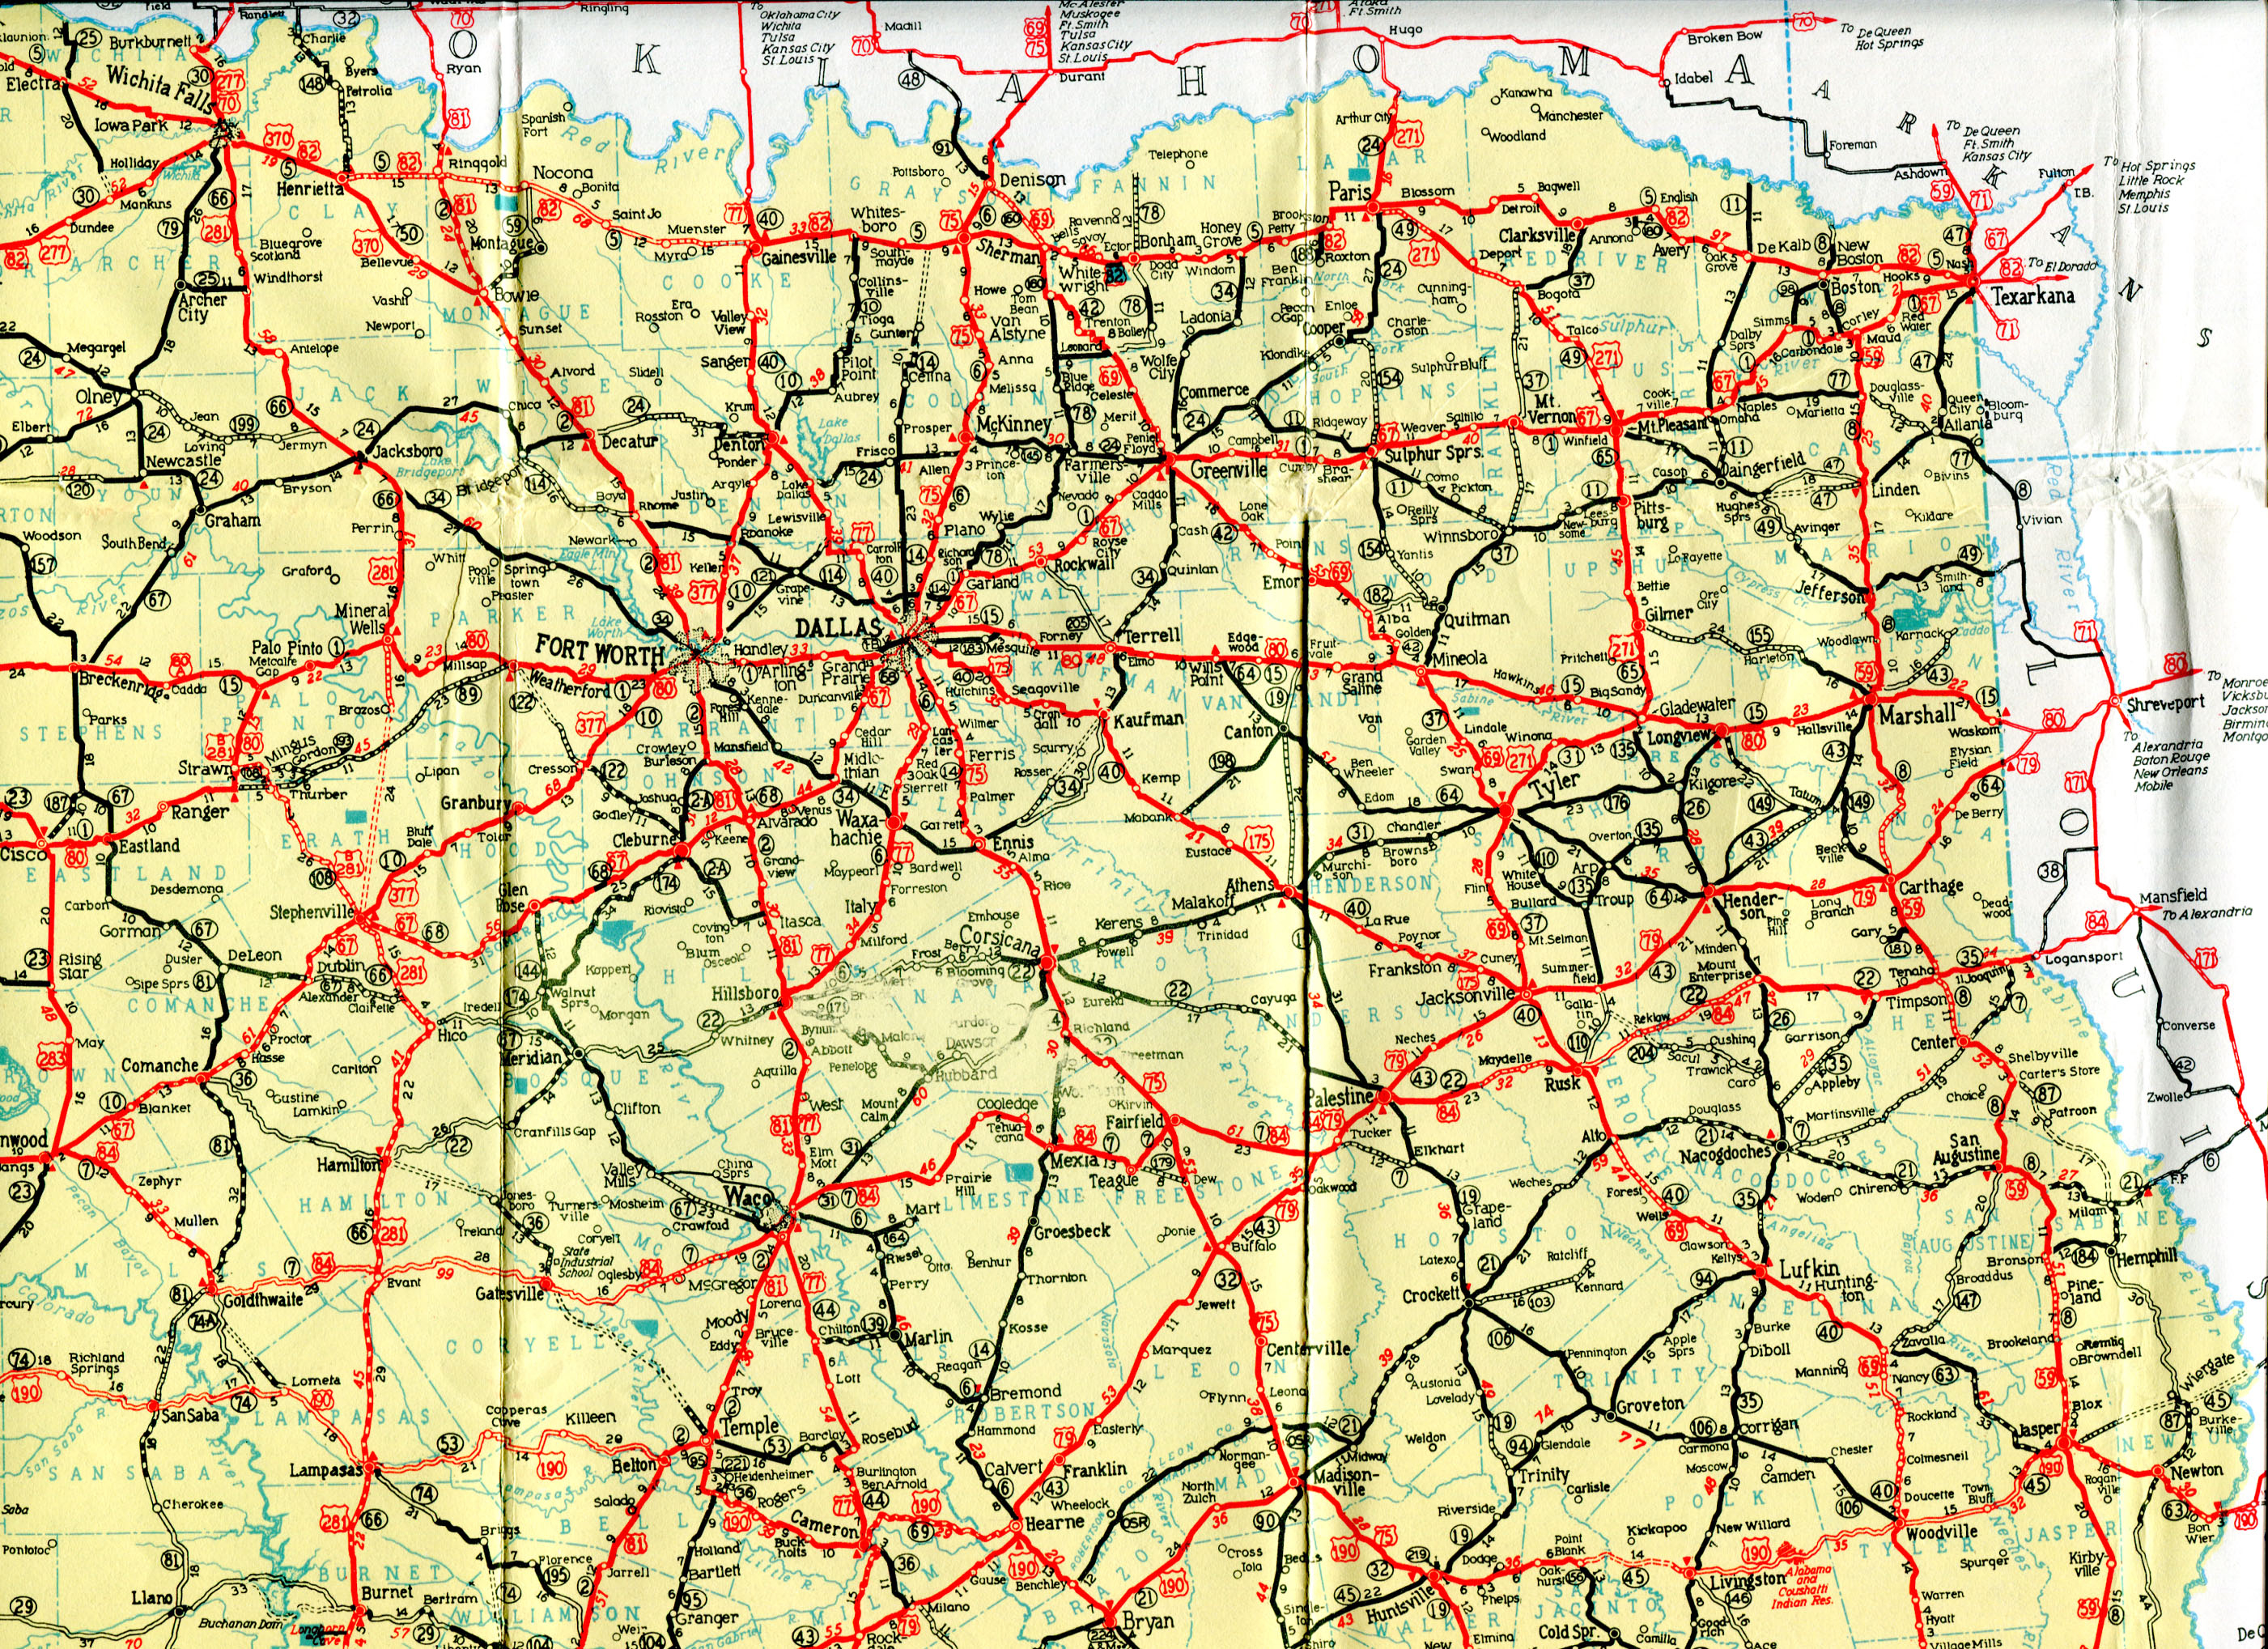 Old Highway Maps Of Texas - Texas Panhandle Road Map